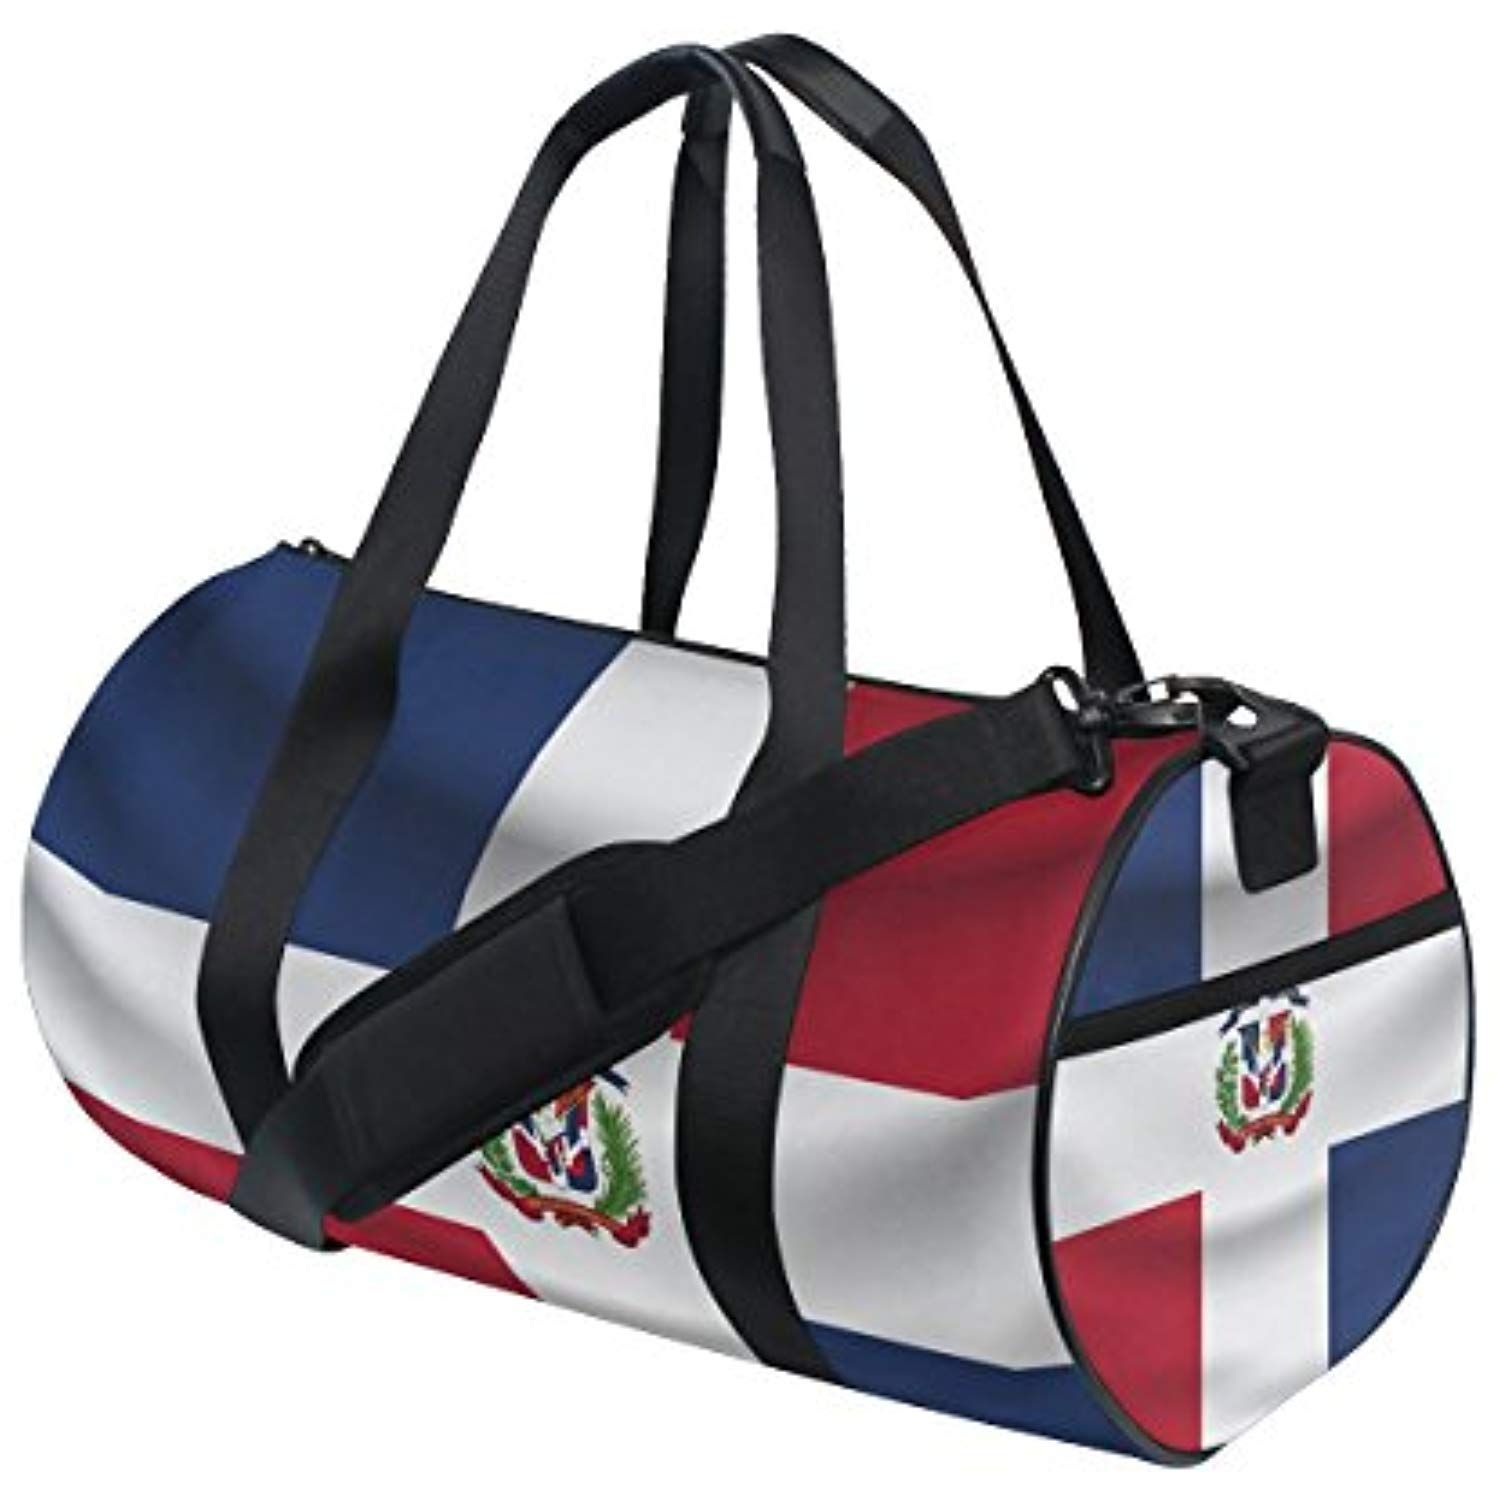 243e065840a3 Dominican Republic Flag Travel Duffel Shoulder Bag ,Sports Gym Fitness  Bags -- Click on the image for additional details.  Accessories